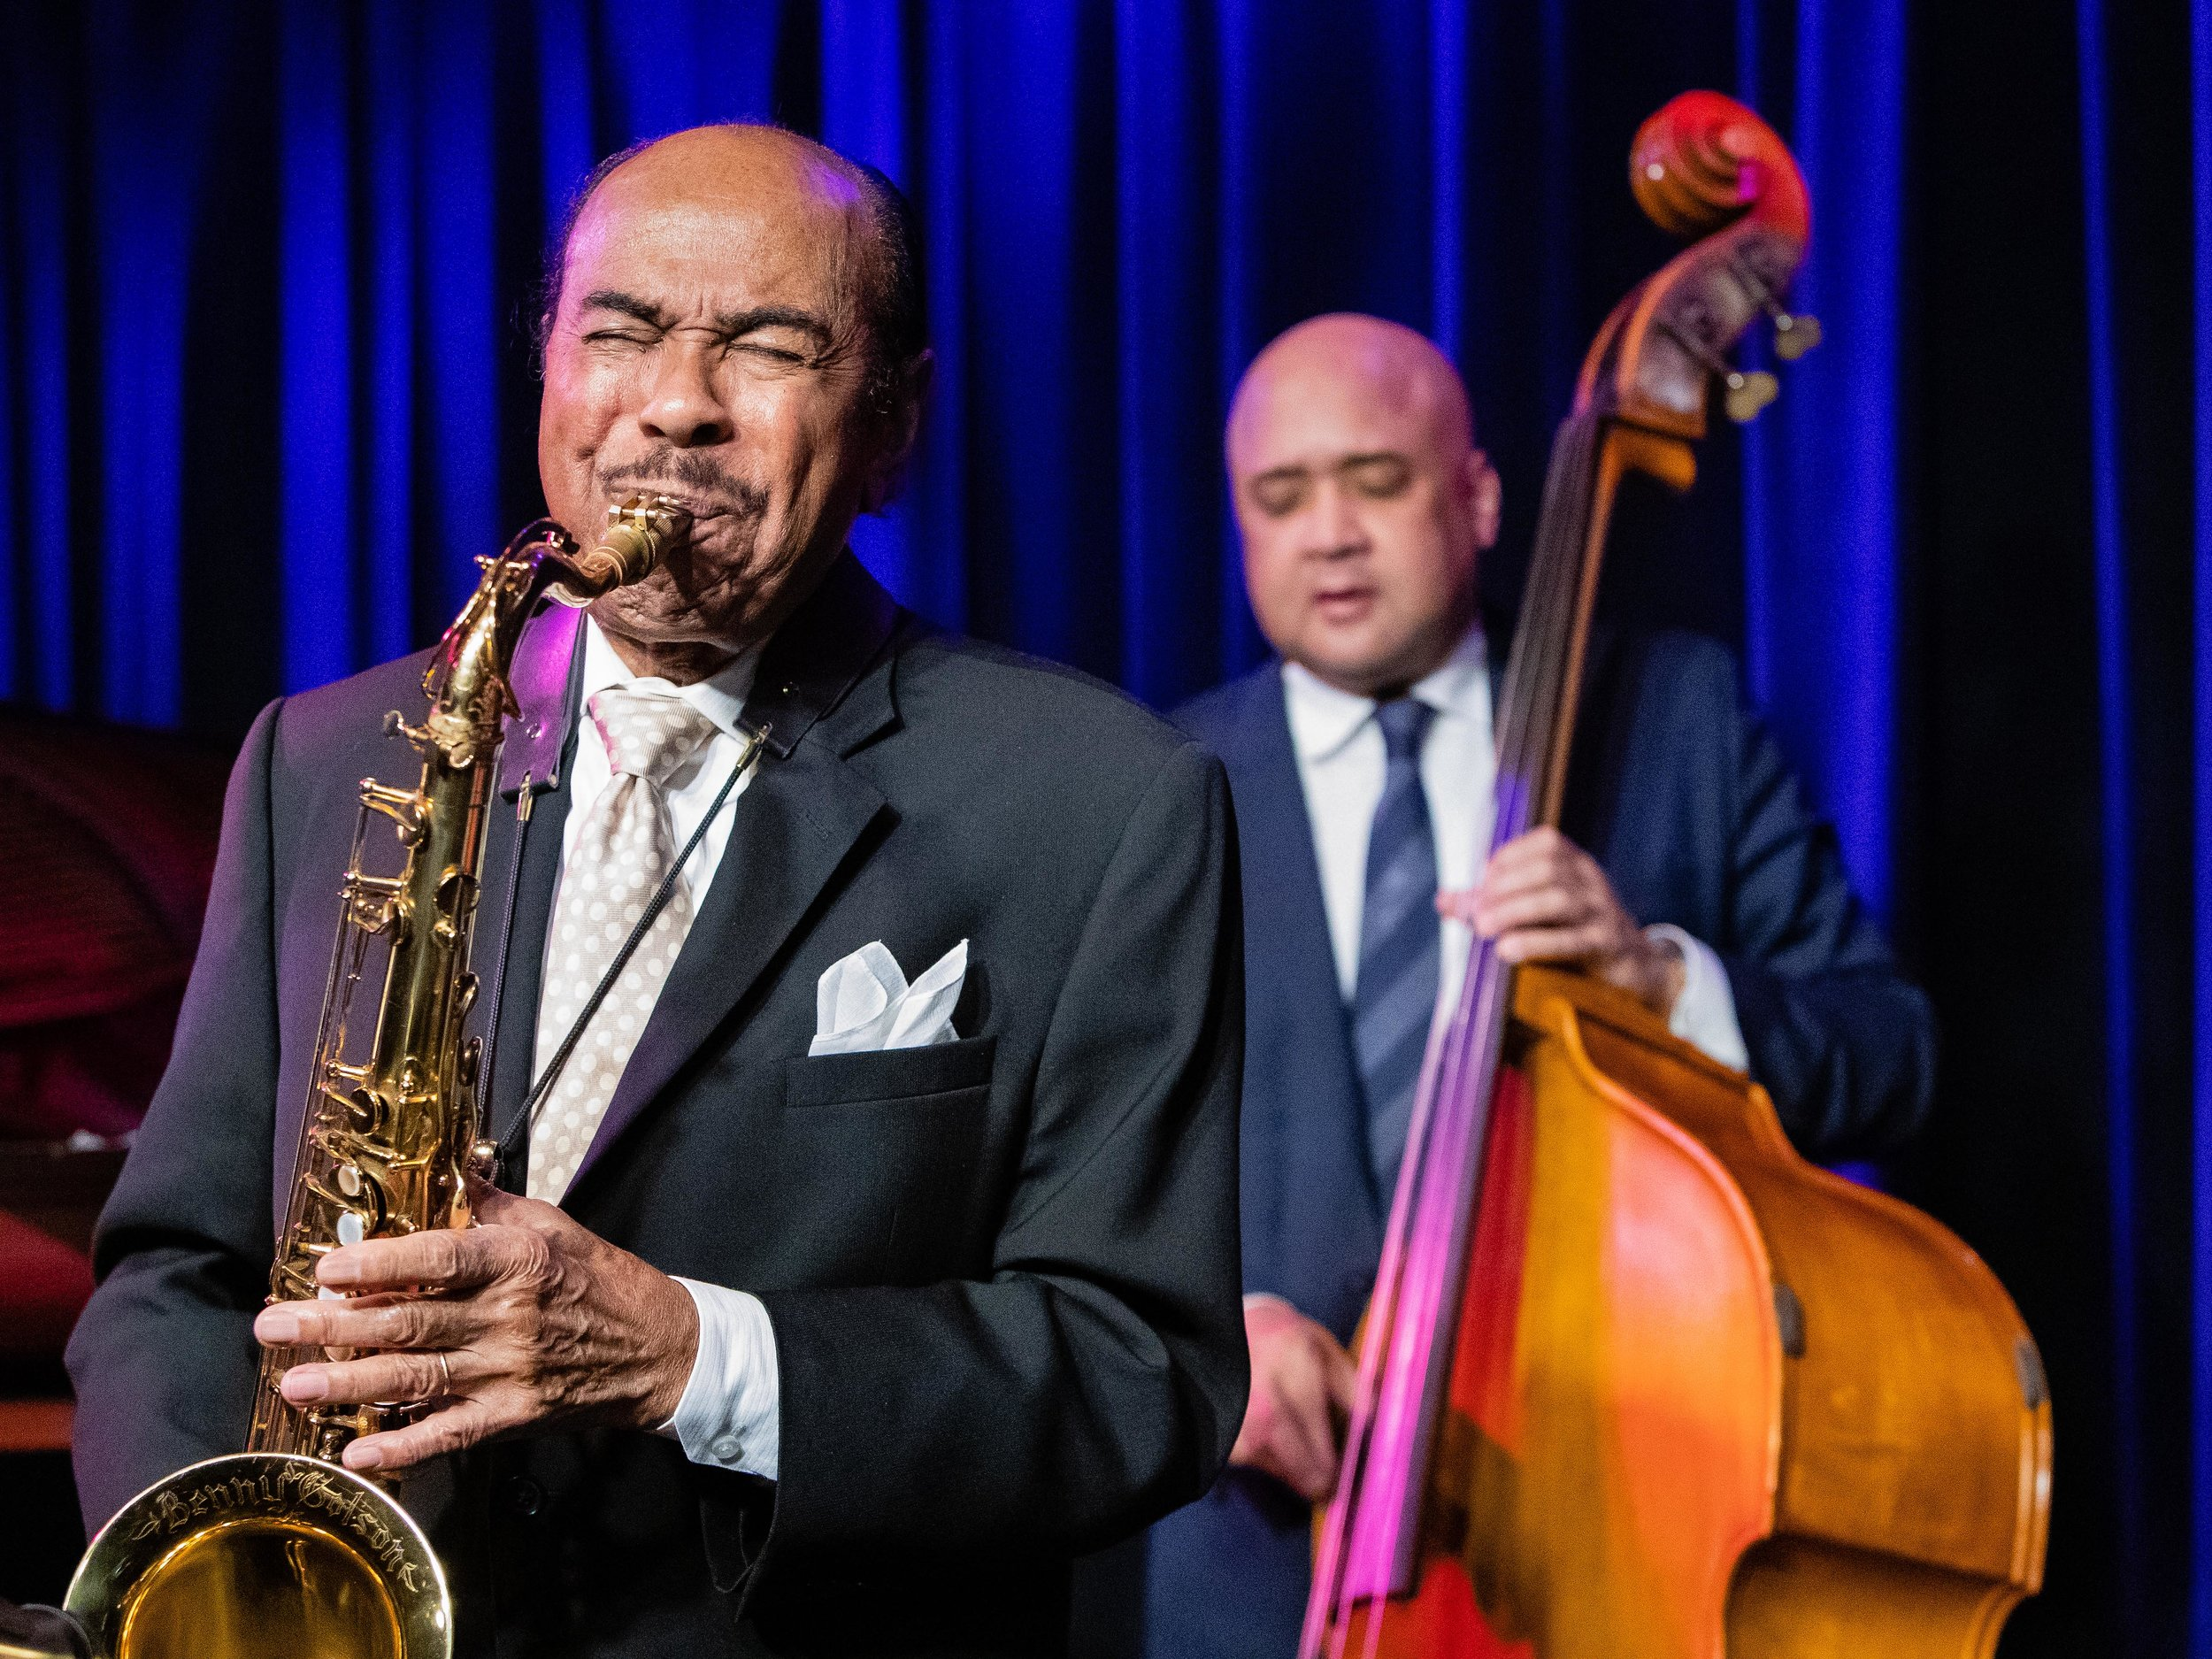 Benny Golson performs many of his classic jazz compositions at The Nash Phoenix.